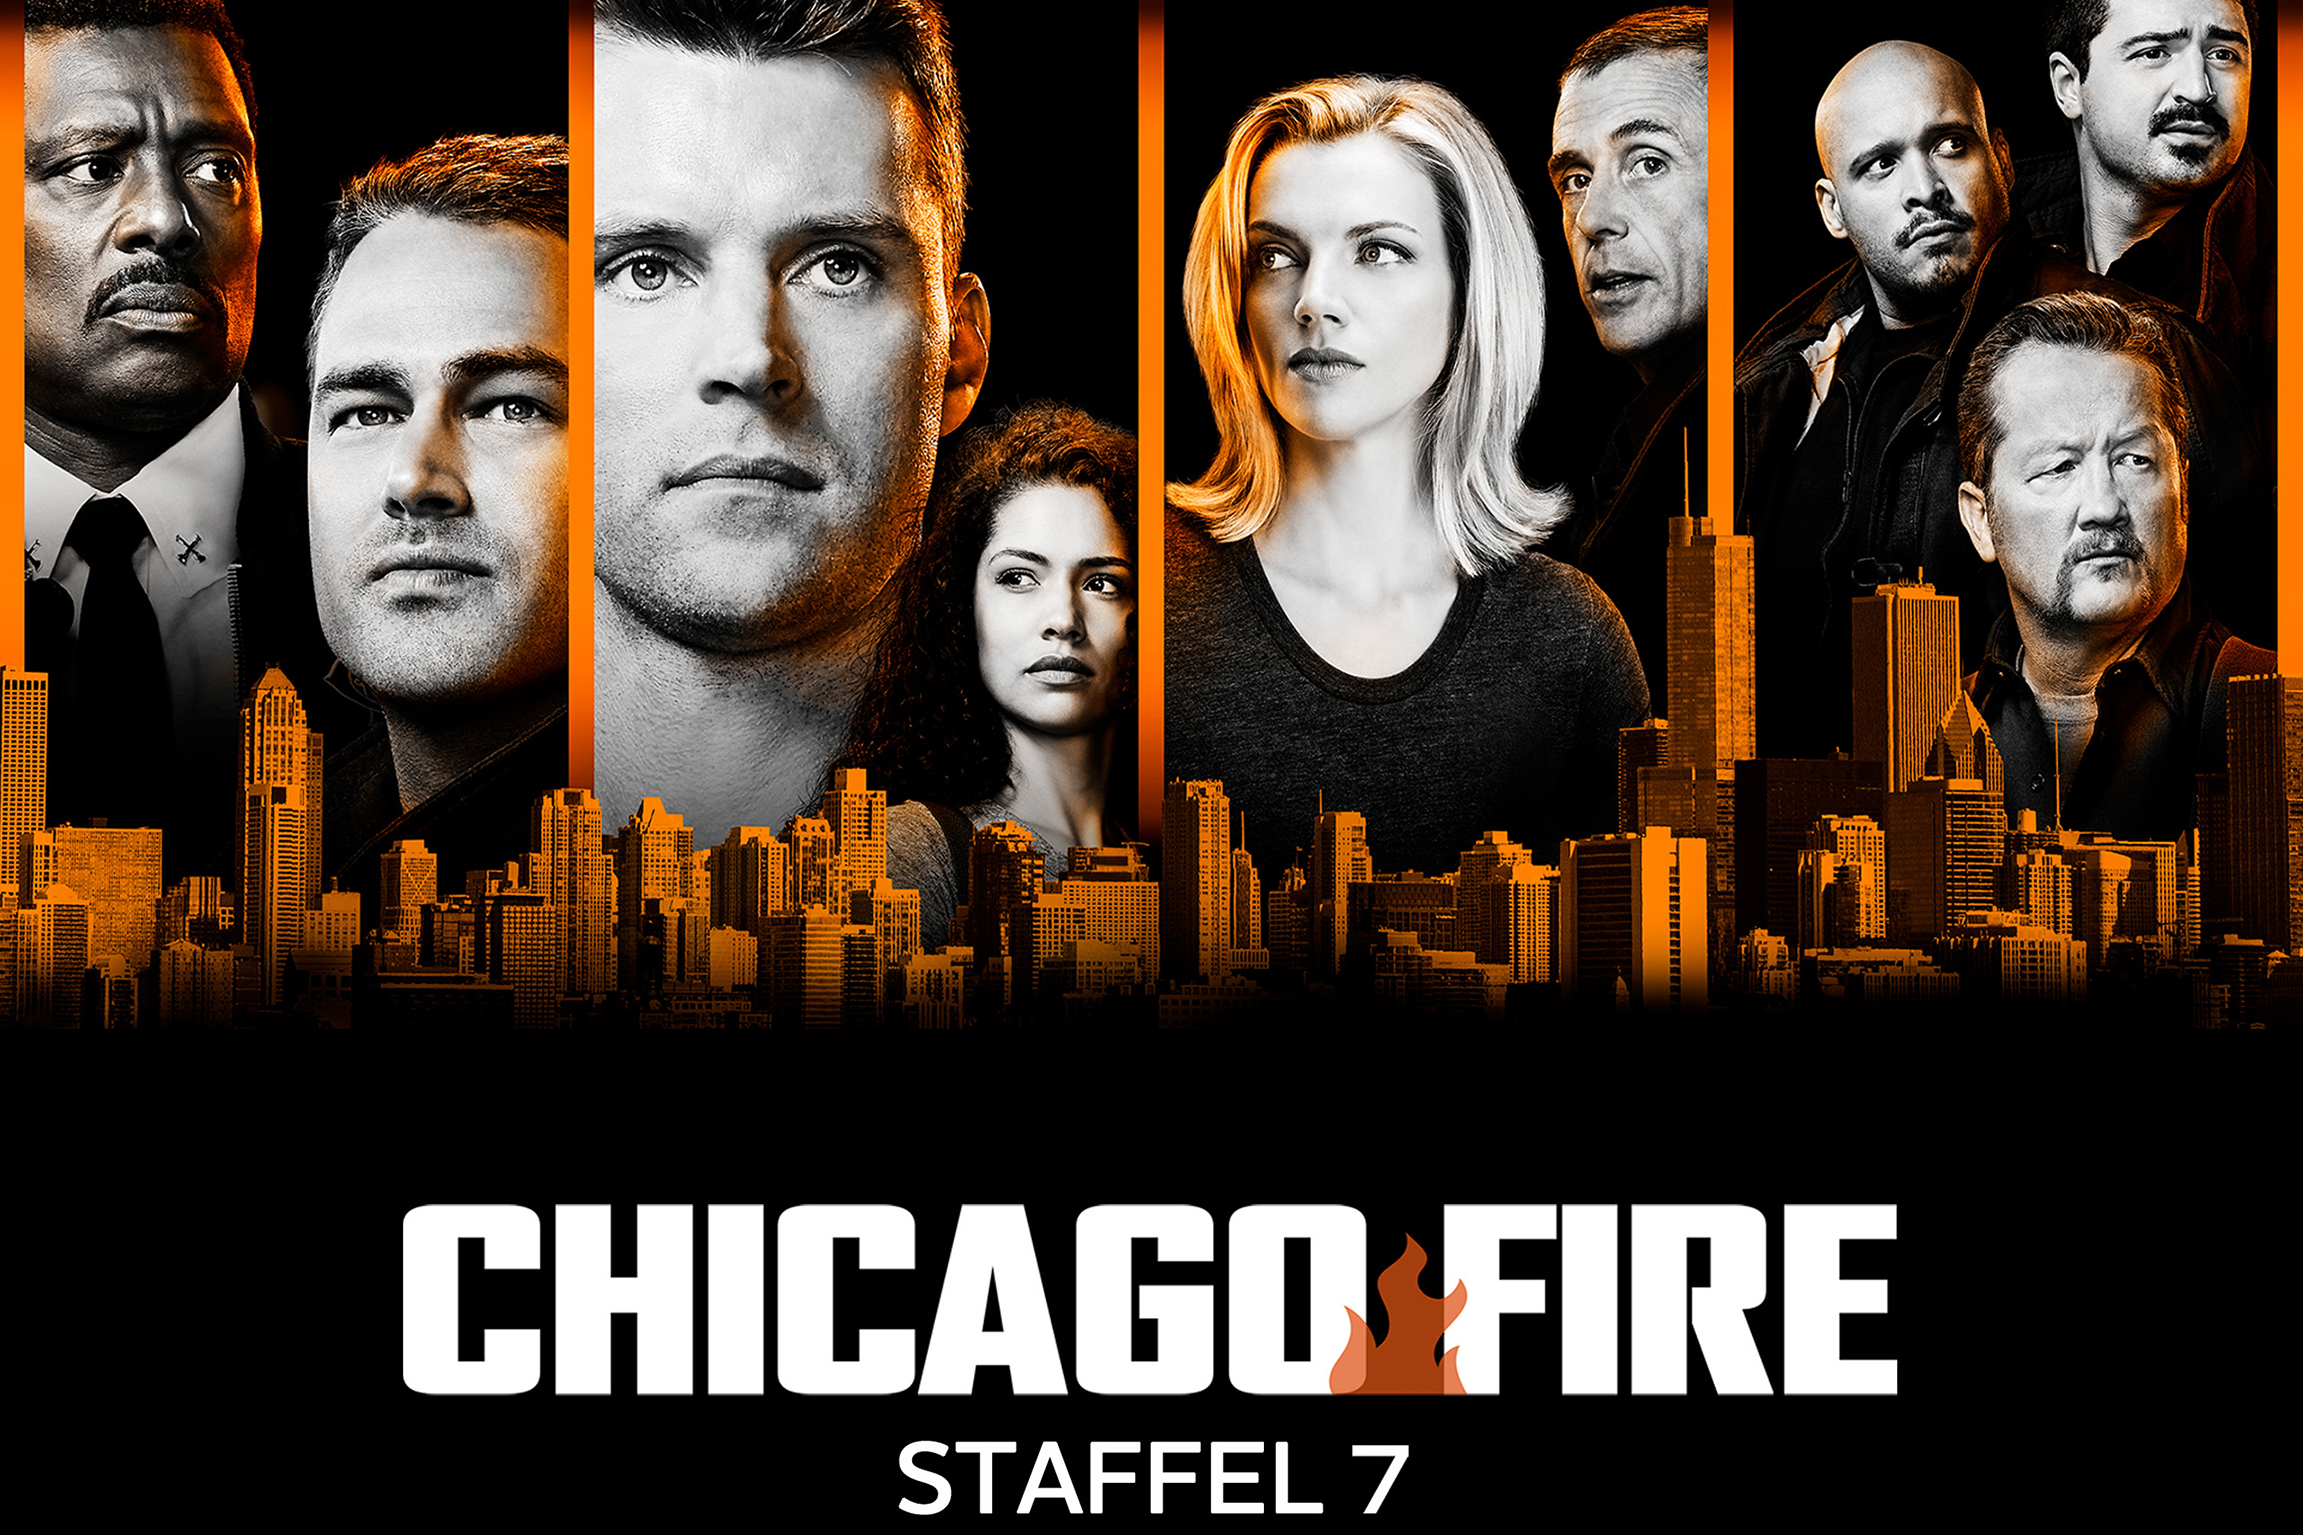 Chicago Fire Staffel 7 Keyvisual